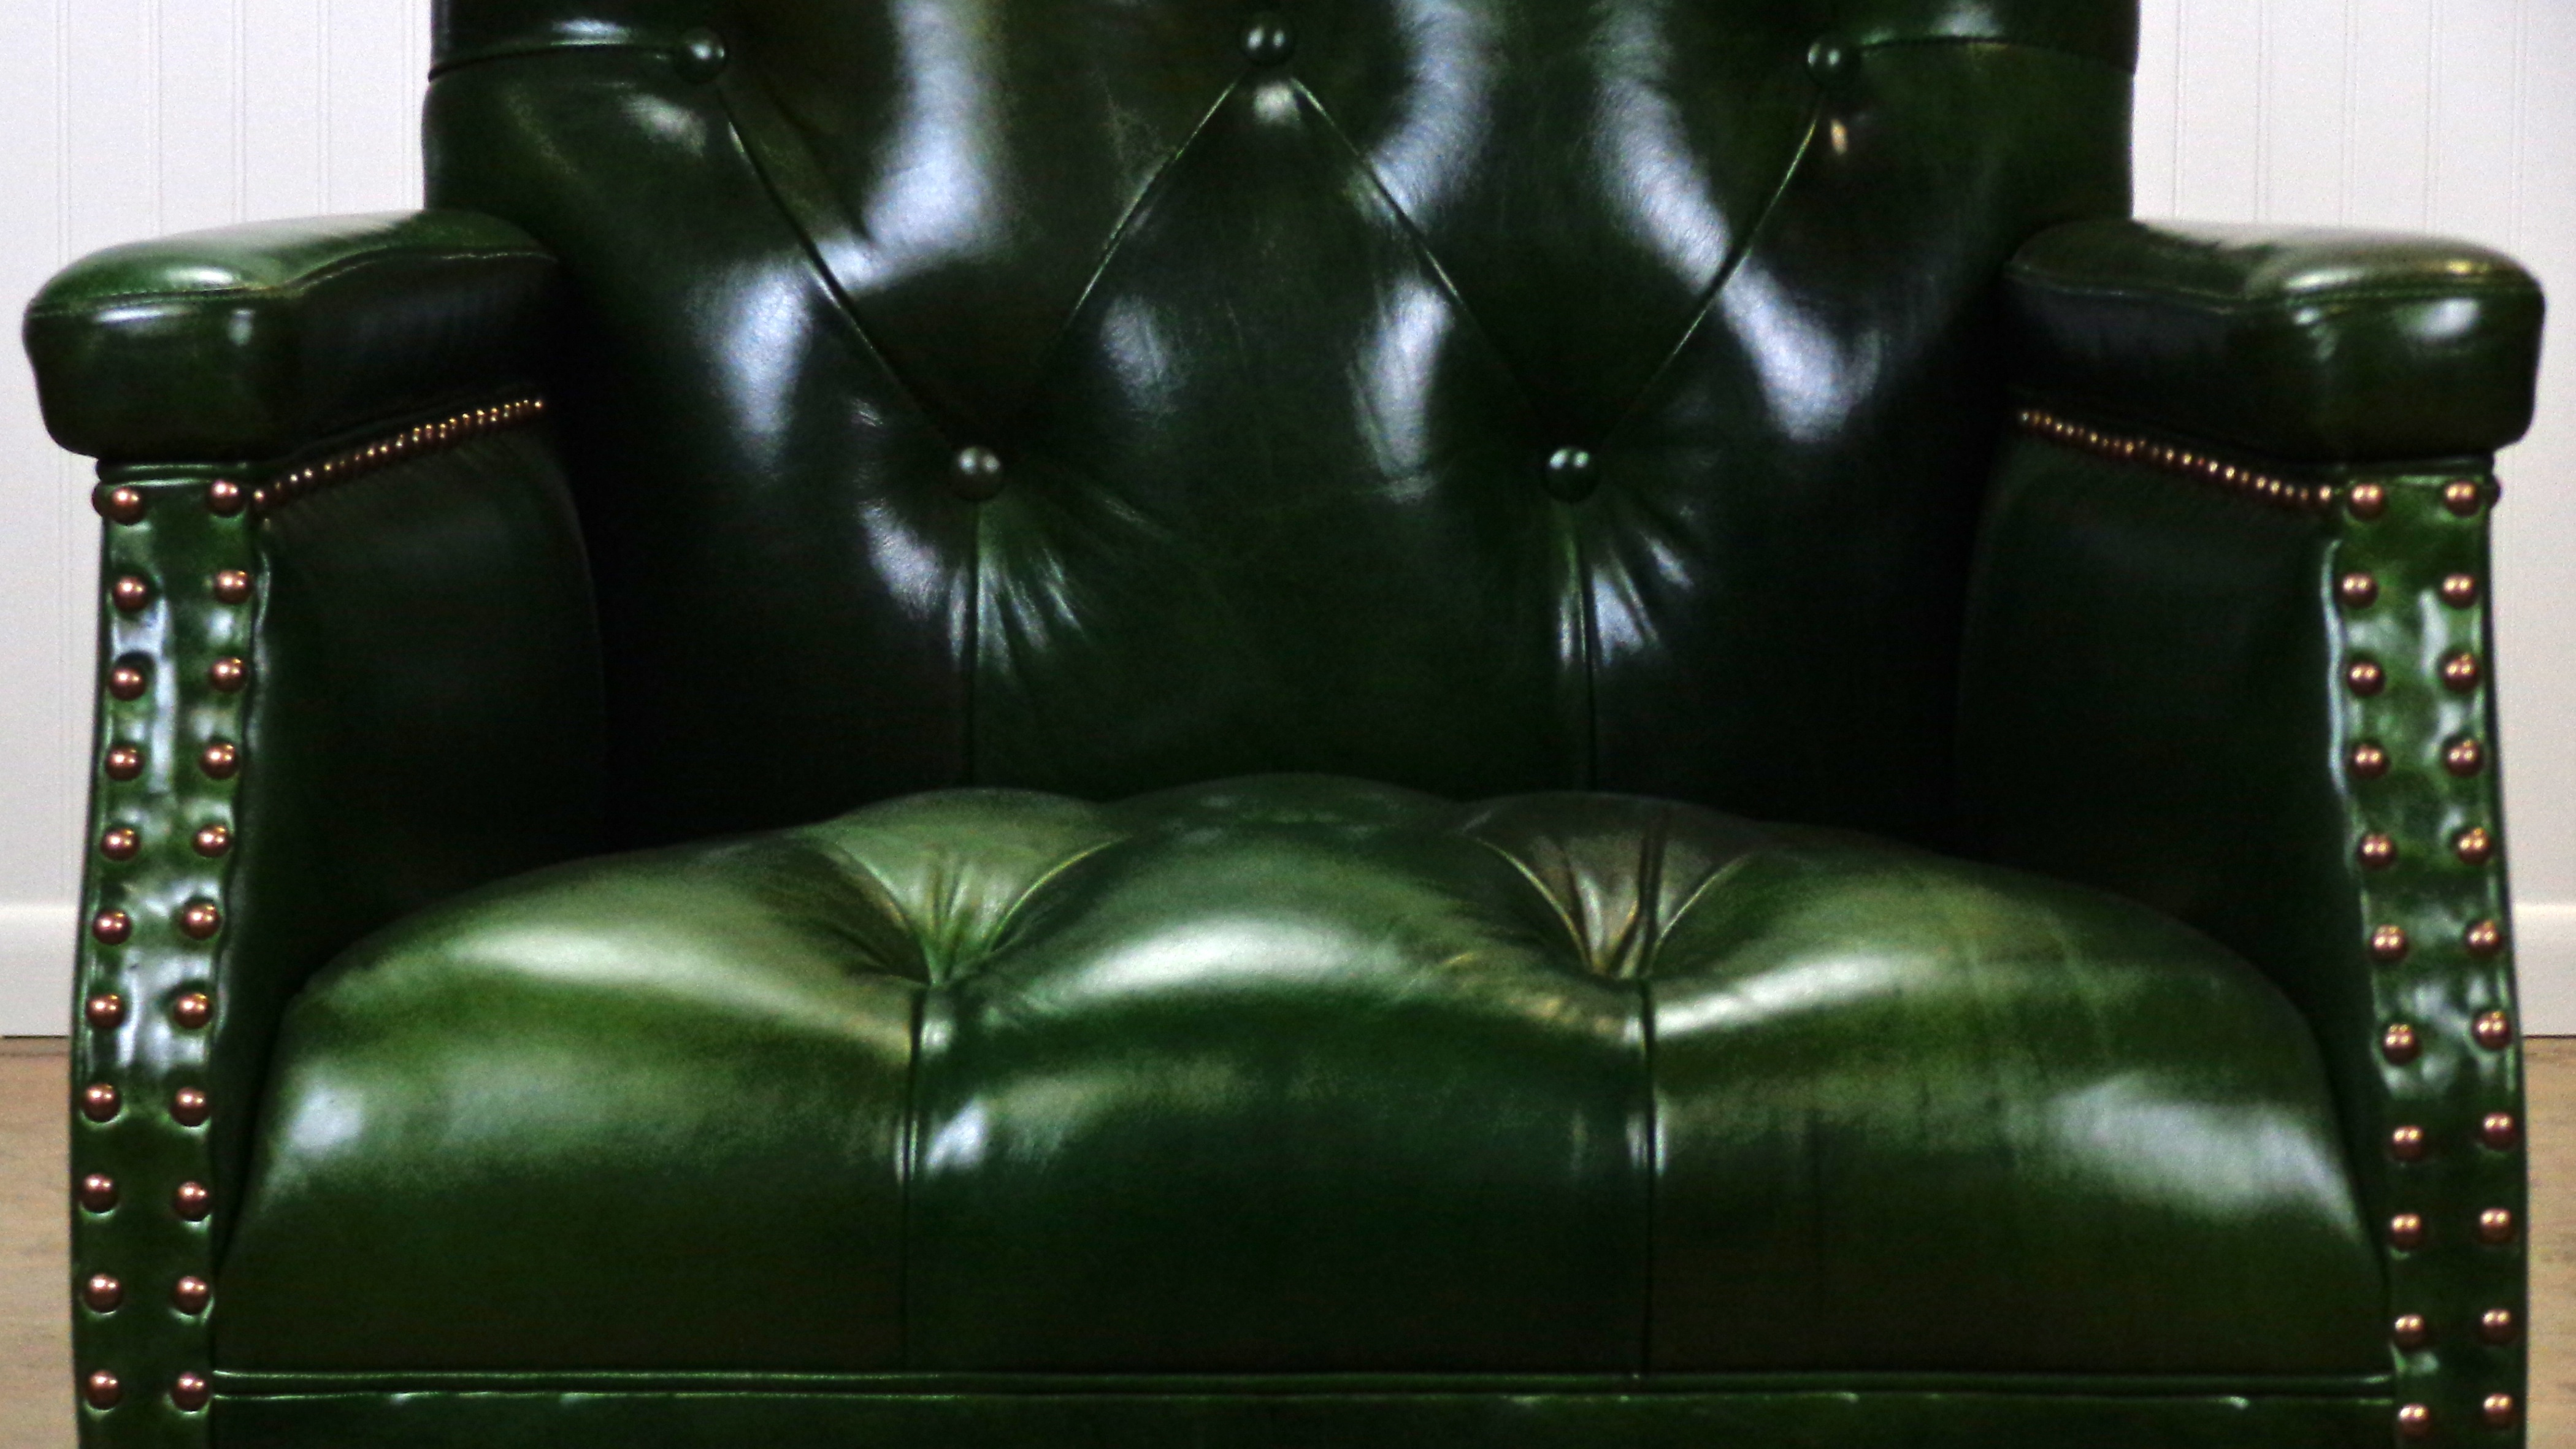 Gull Tufted Leather Green Chair